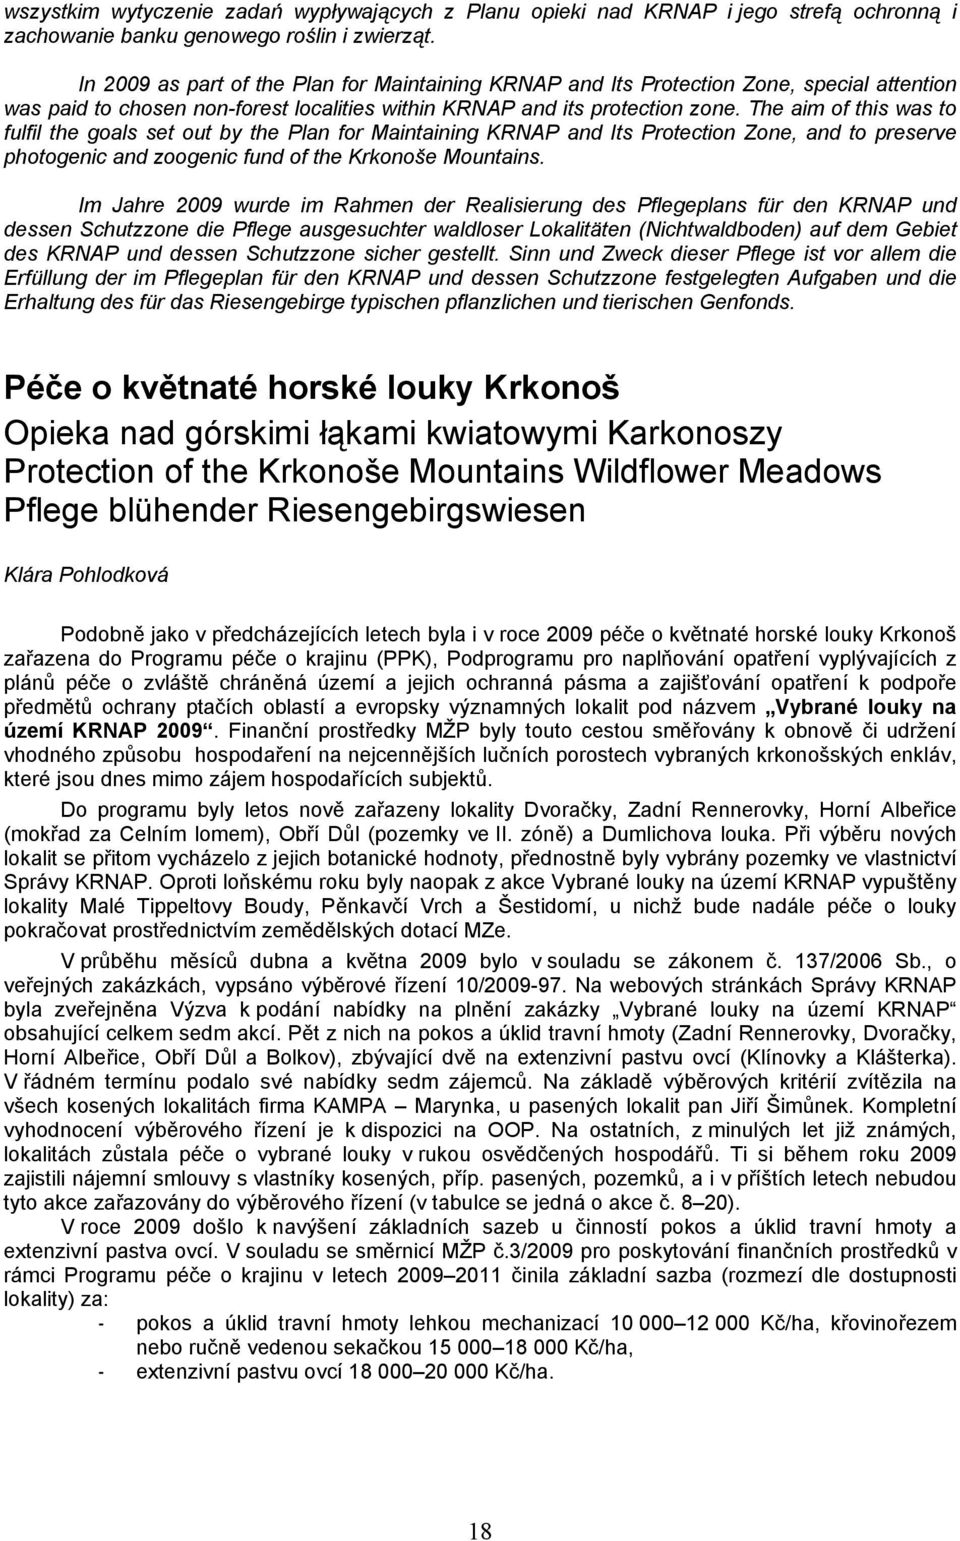 The aim of this was to fulfil the goals set out by the Plan for Maintaining KRNAP and Its Protection Zone, and to preserve photogenic and zoogenic fund of the Krkonoše Mountains.